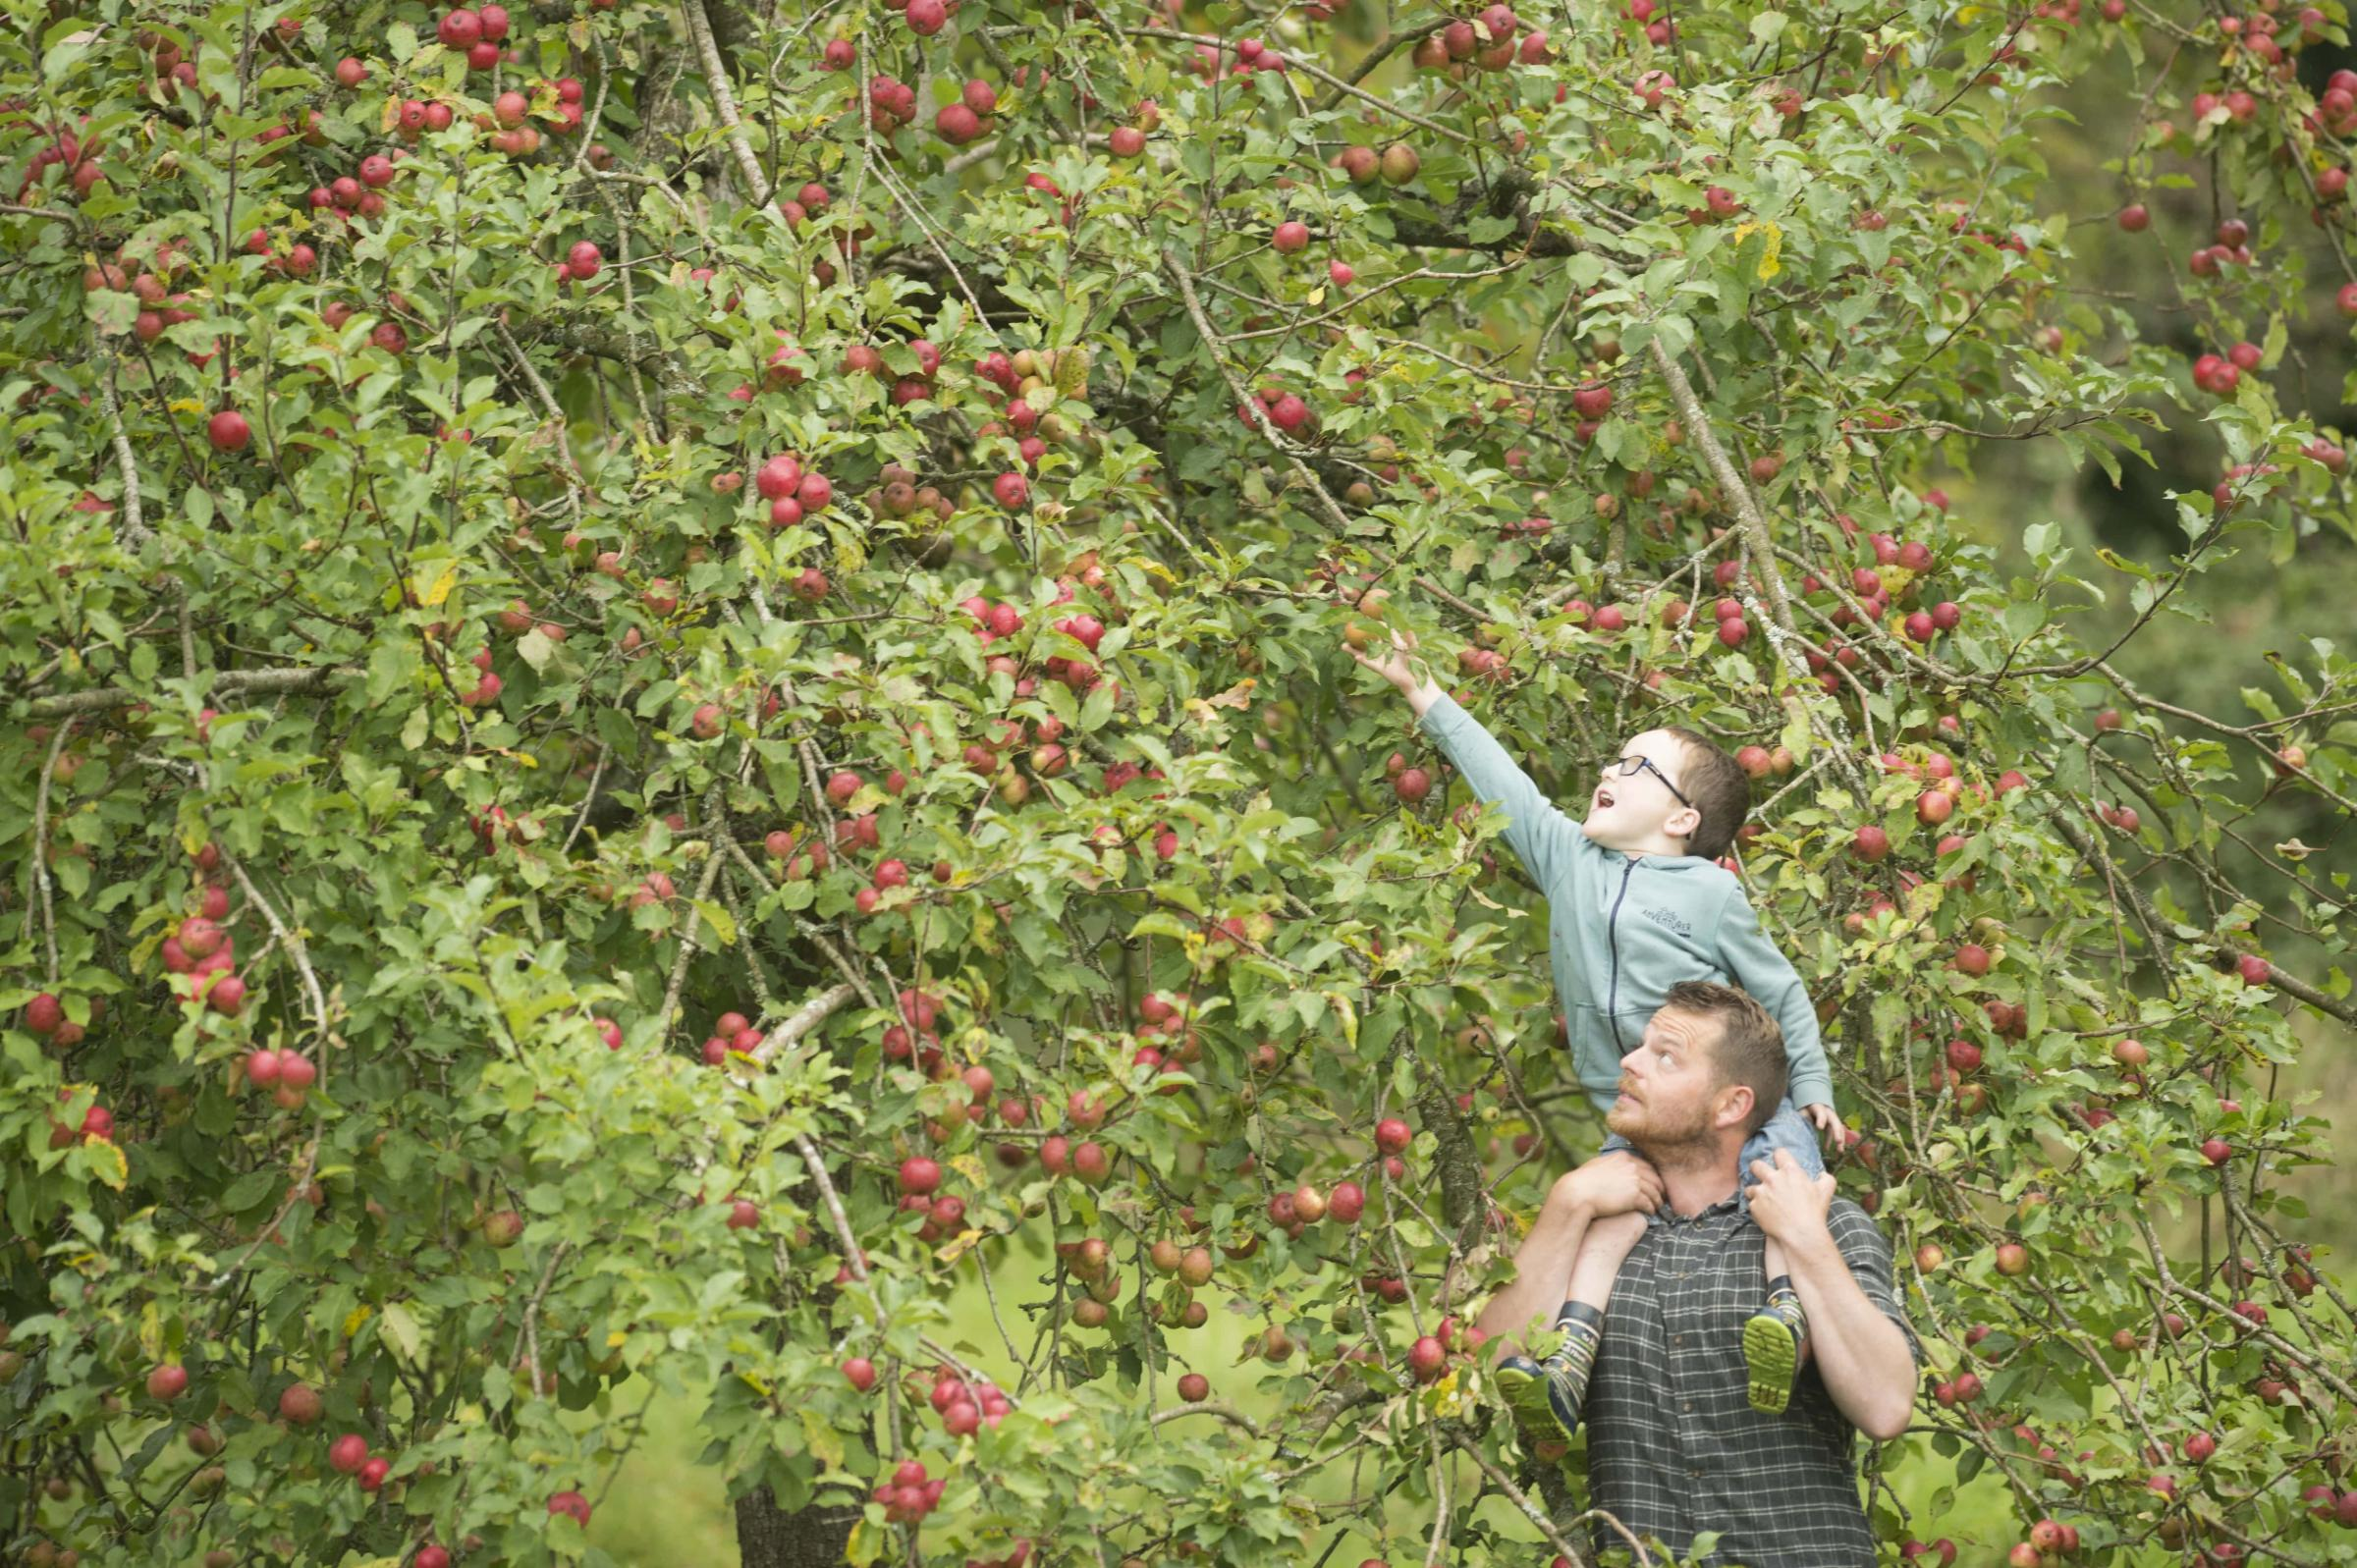 The summer rain has resulted in orchards being full of apples Photo: National Trust Images/Steve Haywood